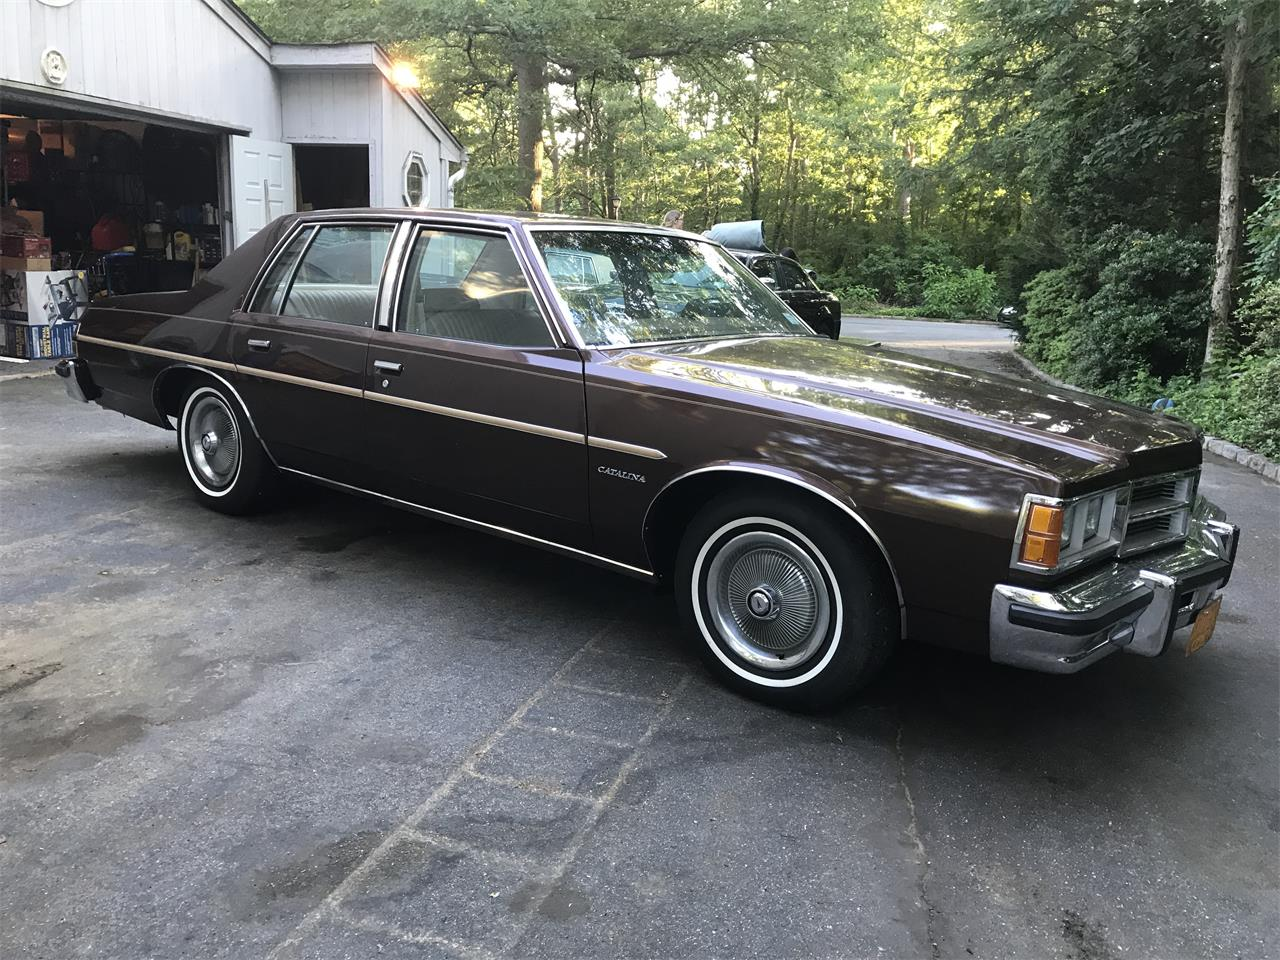 Large Picture of '77 Catalina located in Dix Hills New York - LHWC